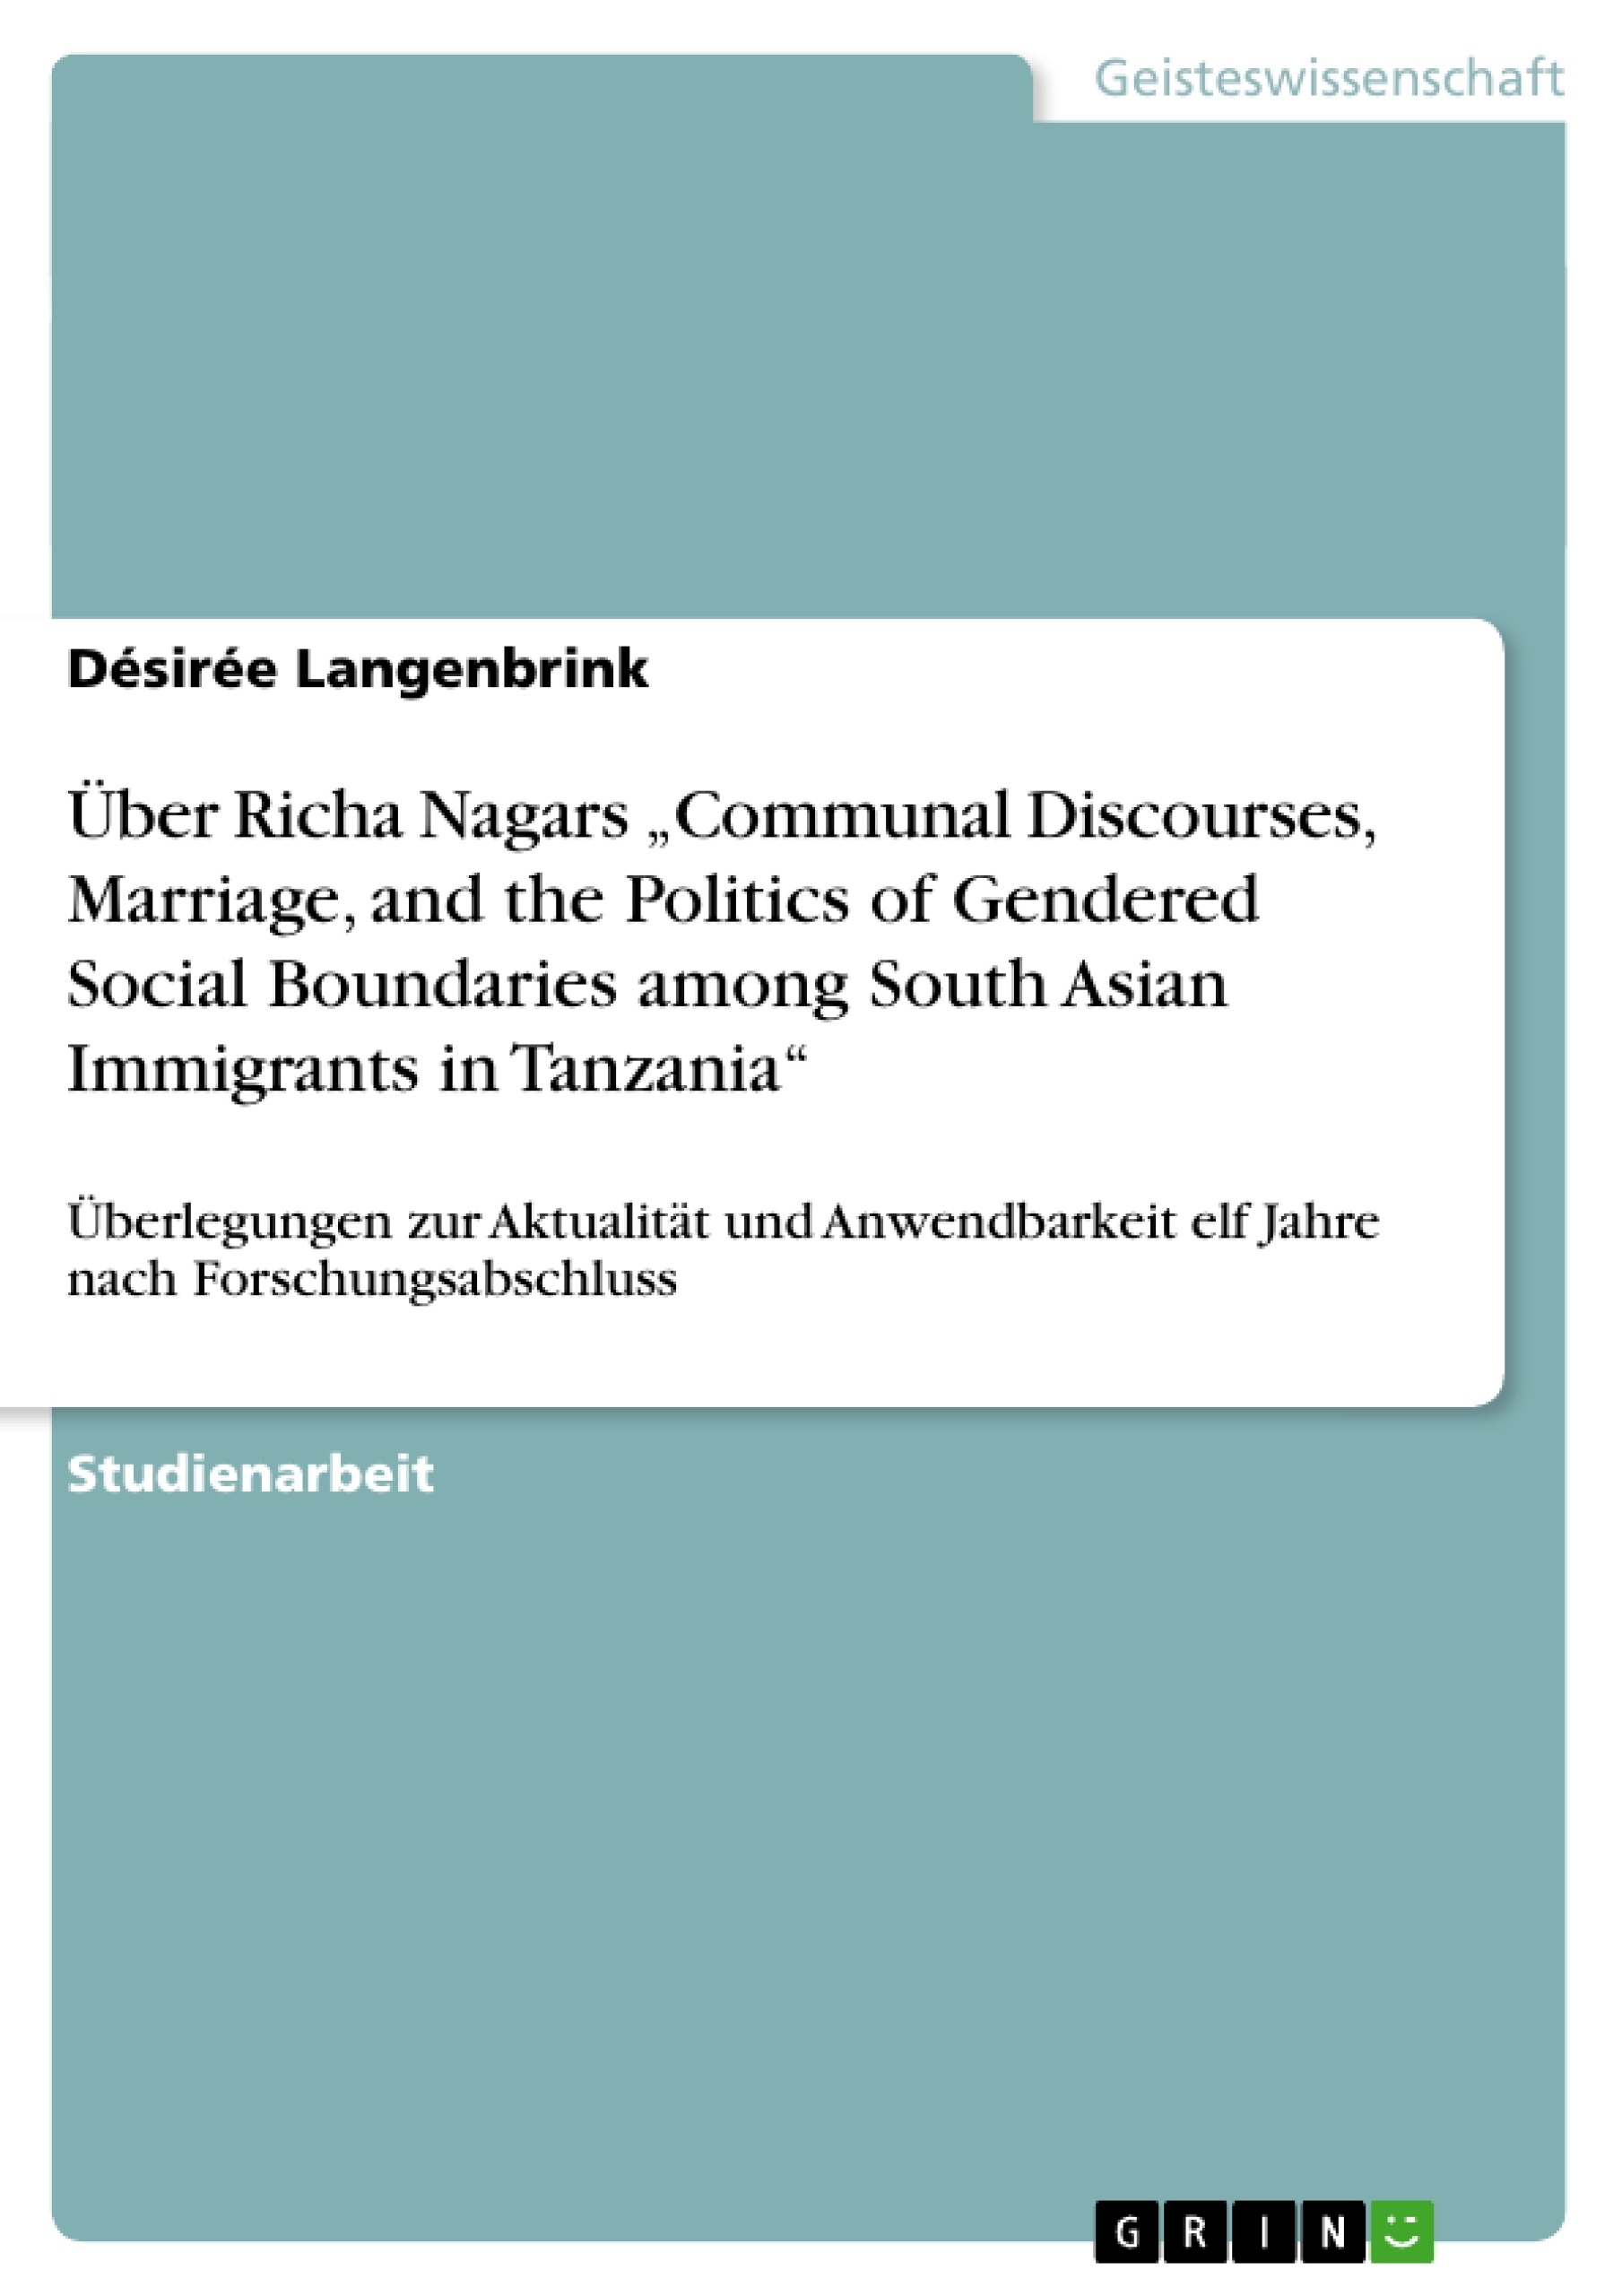 """Titel: Über Richa Nagars """"Communal Discourses, Marriage, and the Politics of Gendered Social Boundaries among South Asian Immigrants in Tanzania"""""""